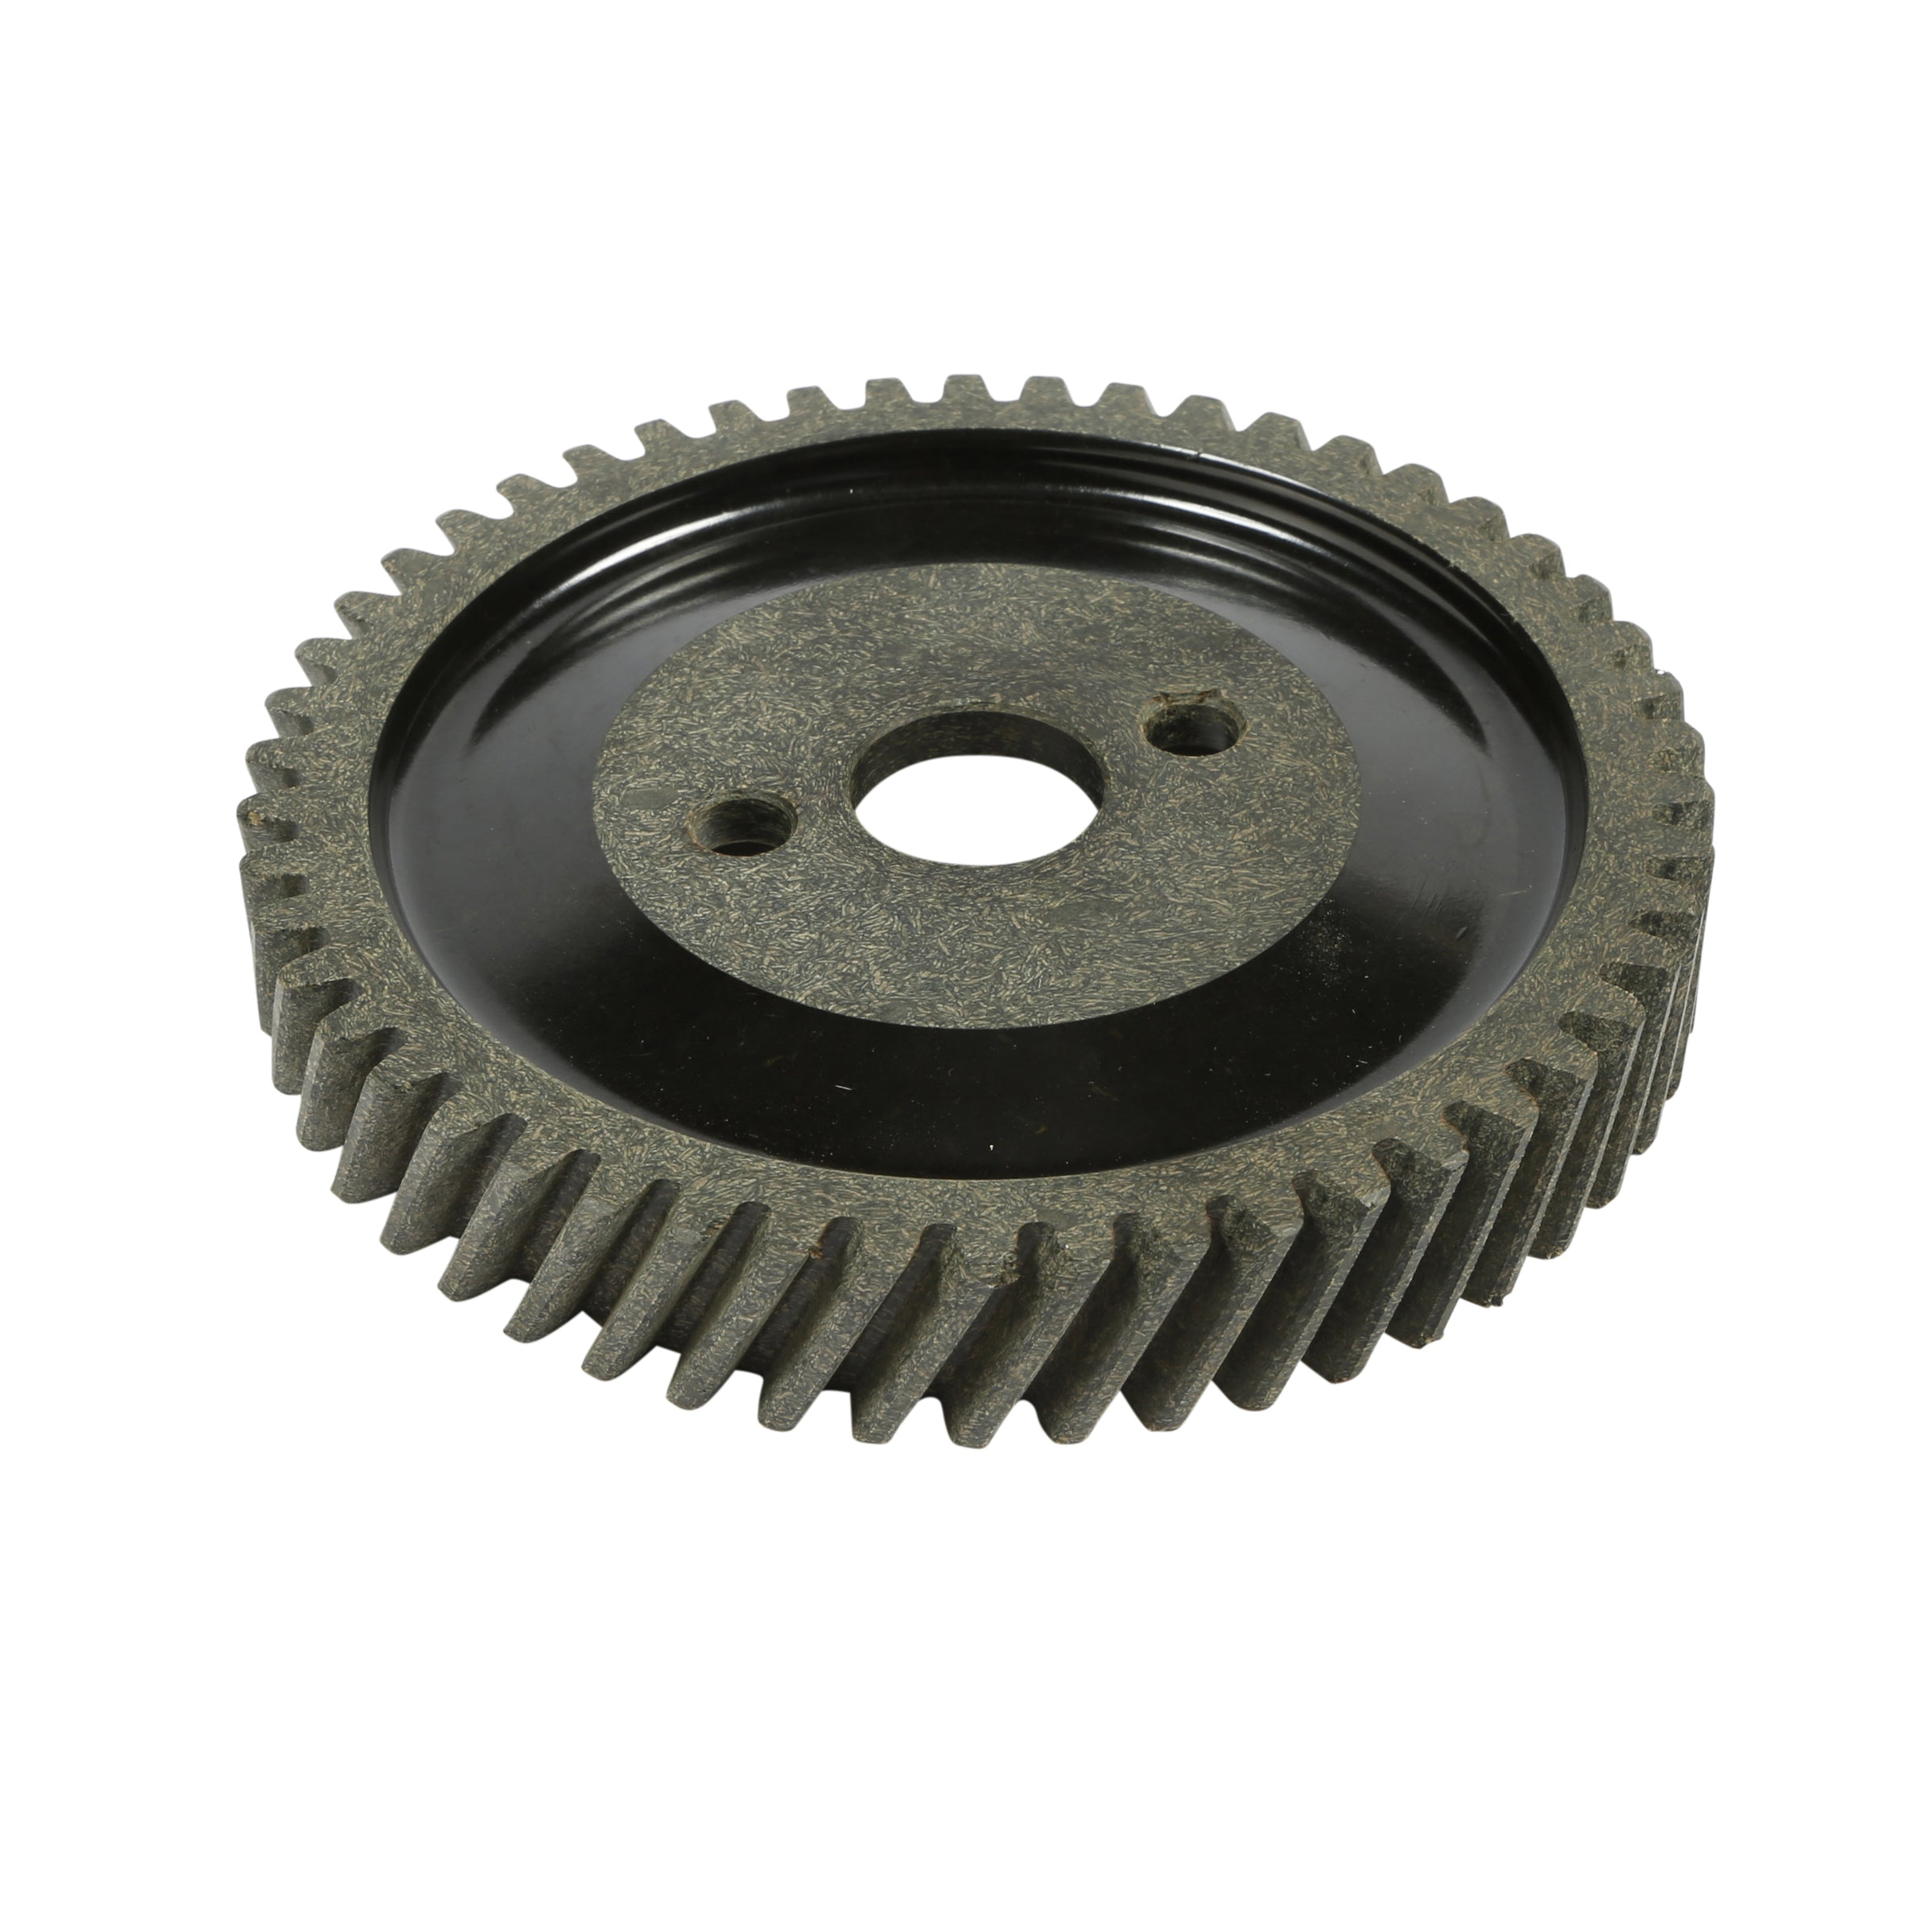 Camshaft Timing Gear (.005) Laminated Fiber • 1928-34 Ford